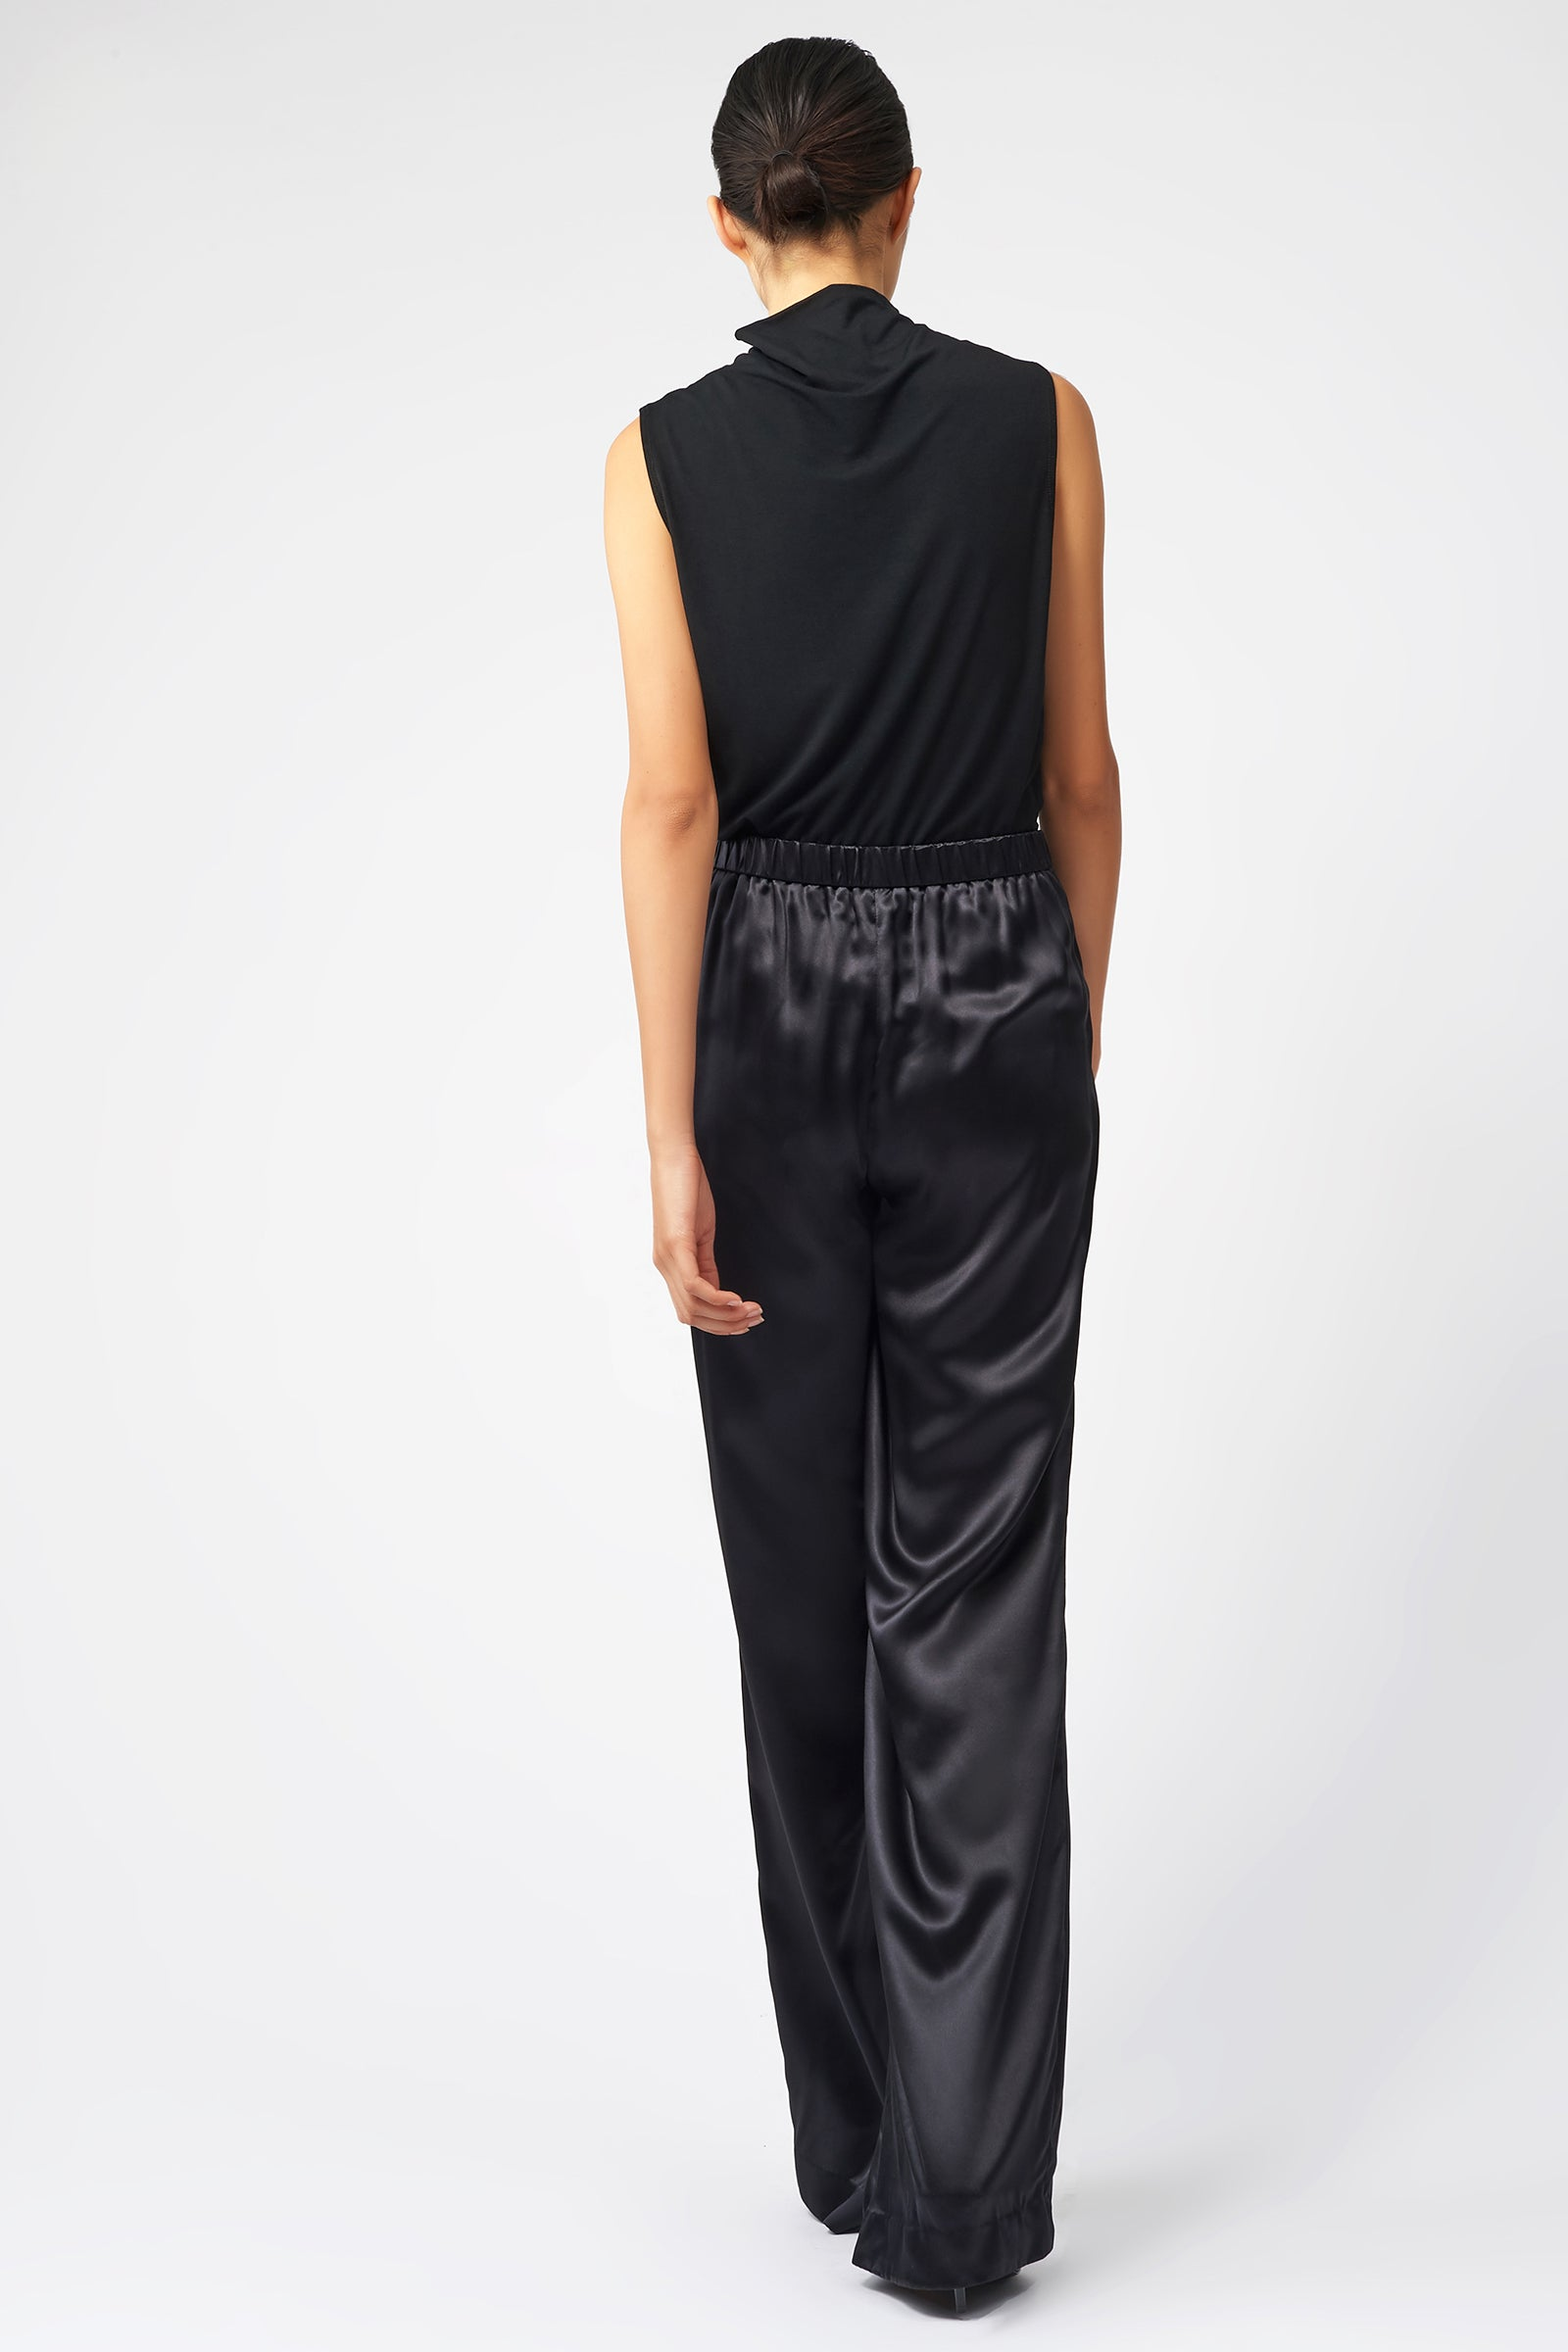 Kal Rieman Classic Silk Trouser in Black on Model Full Front View